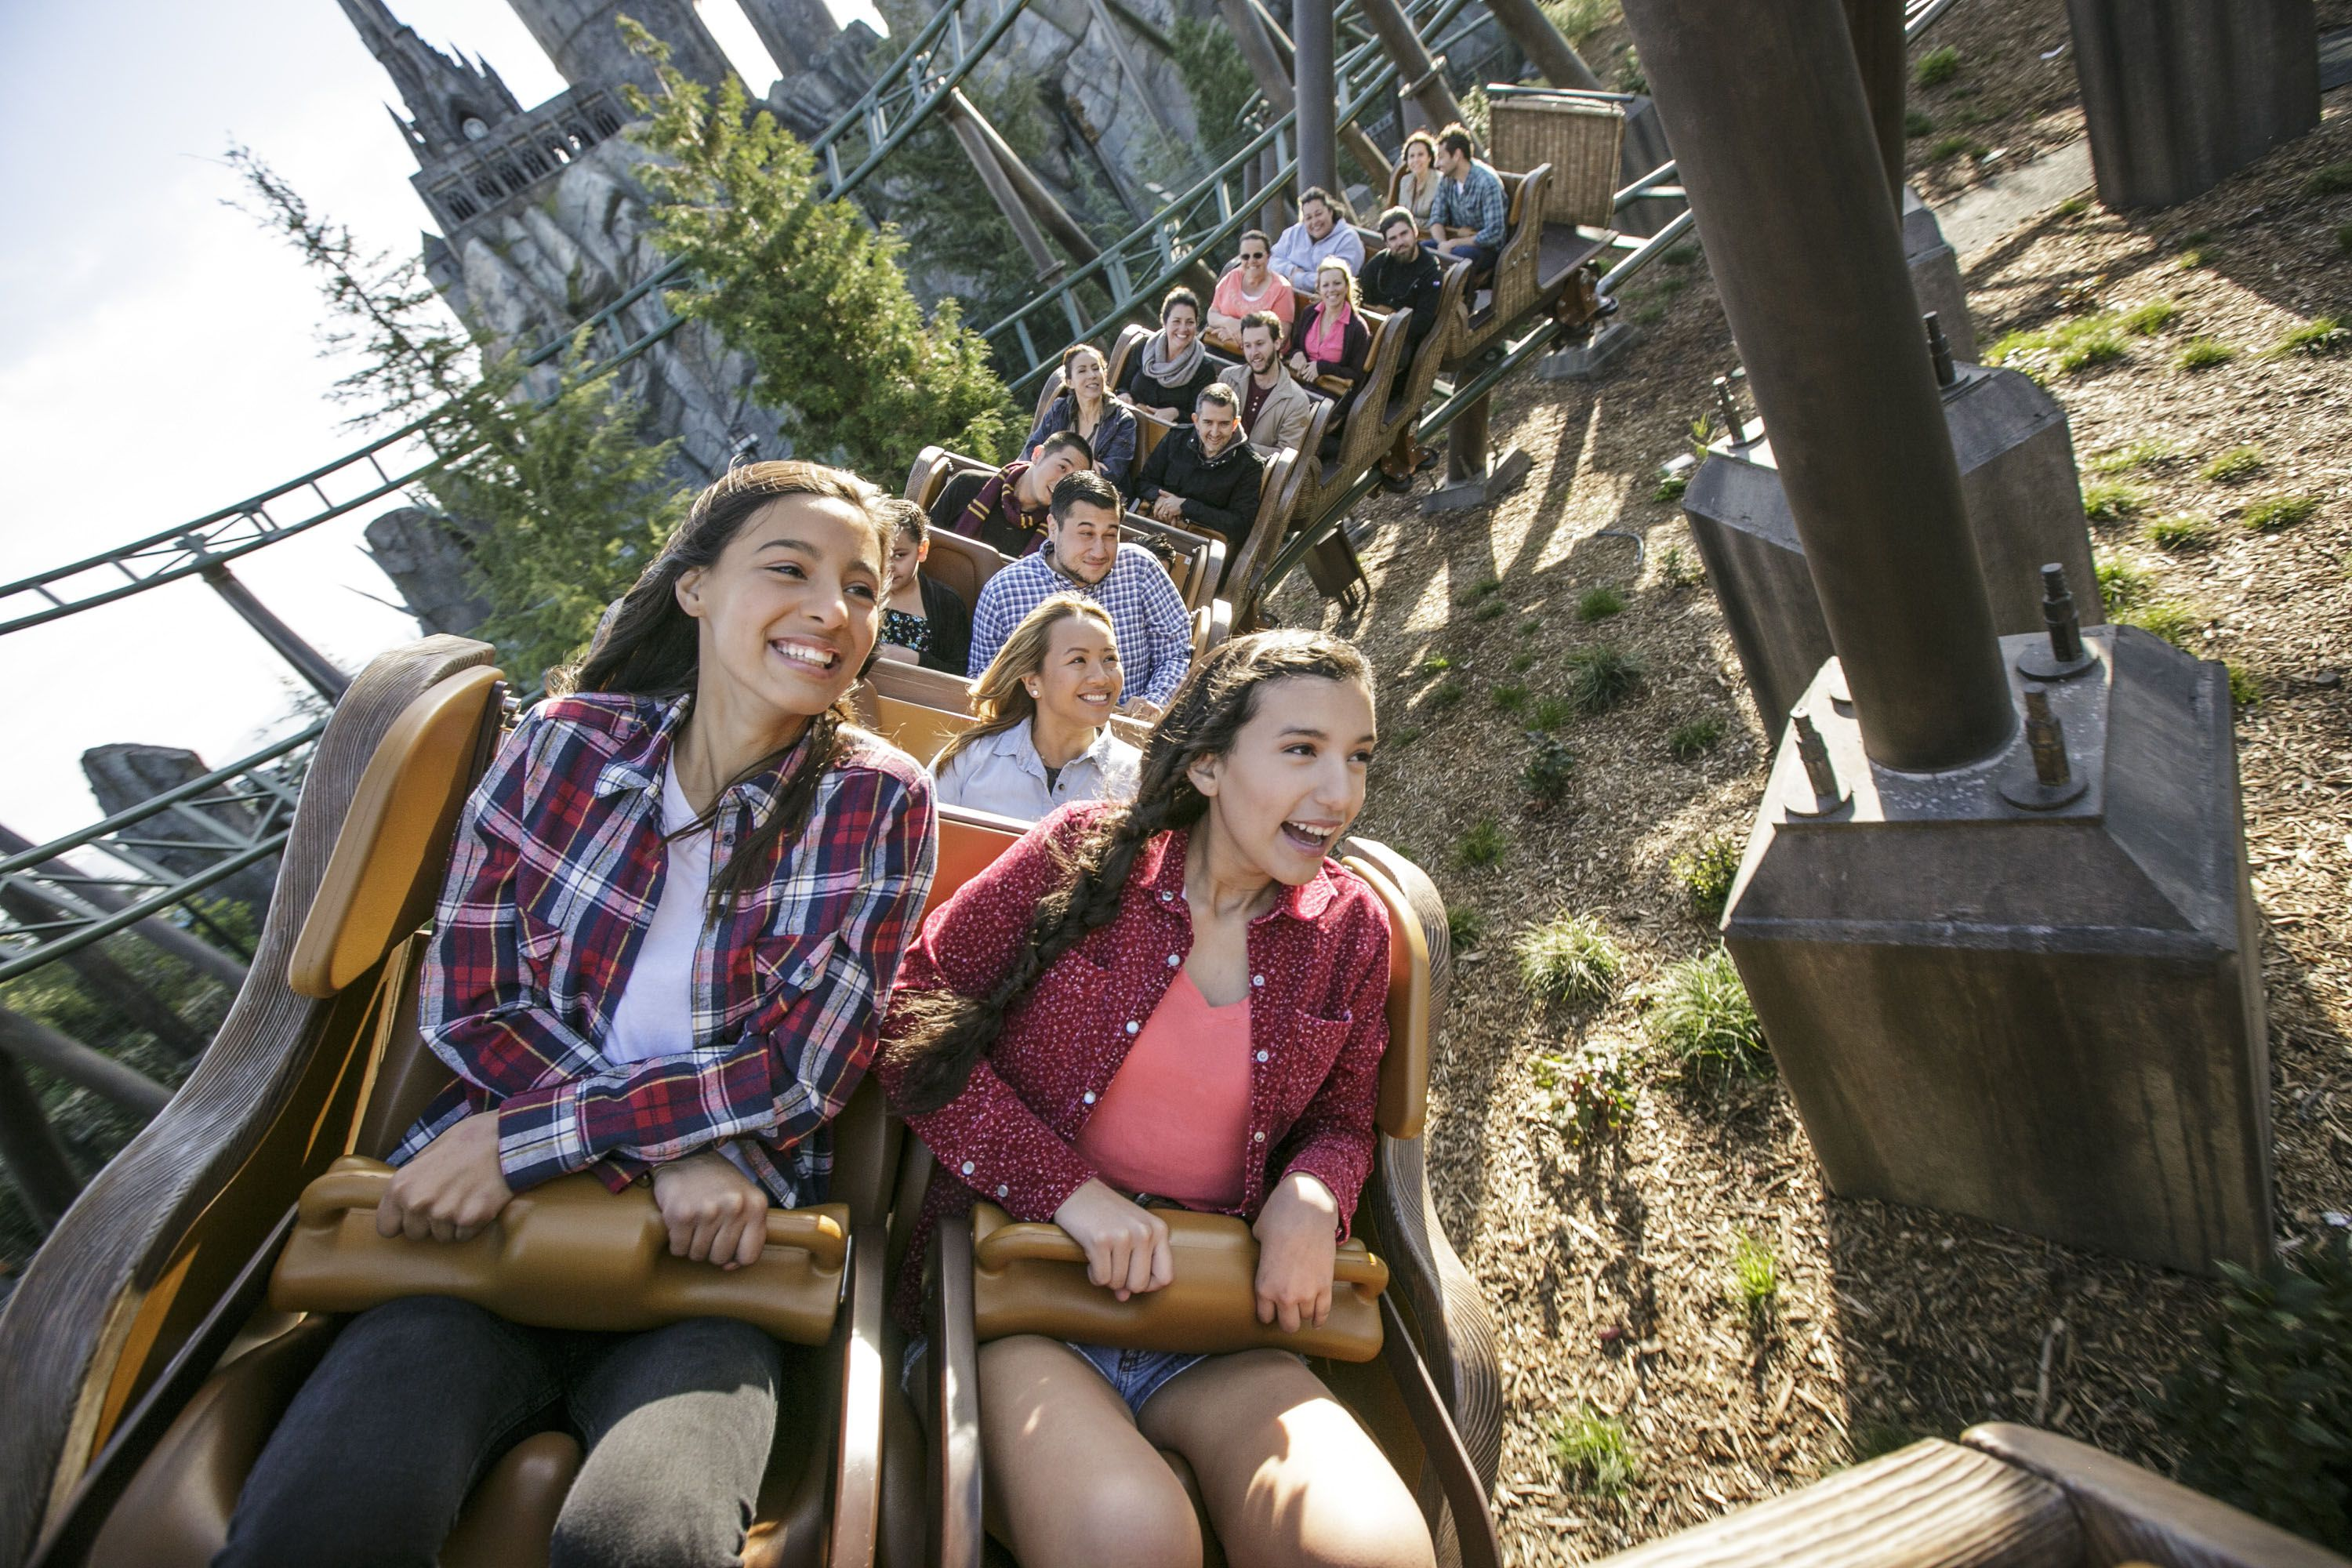 Flight of the Hippogriff coaster at USH